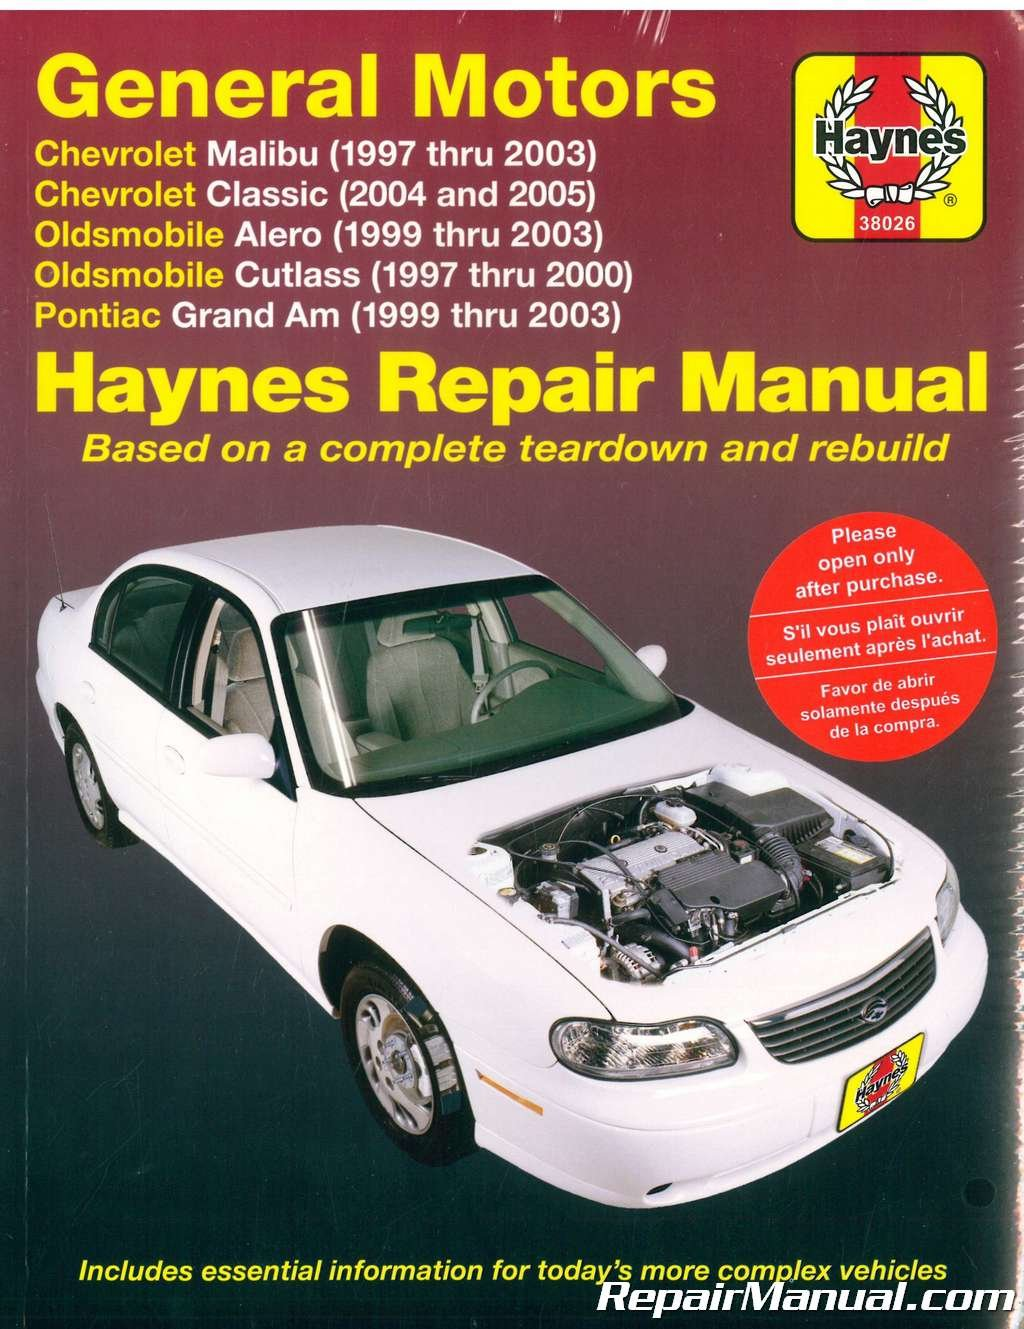 H38026 Haynes GM Chevrolet Malibu Oldsmobile Alero Cutlass and Pontiac  Grand AM 1997-2003 Auto Repair Manual: Manufacturer: Amazon.com: Books